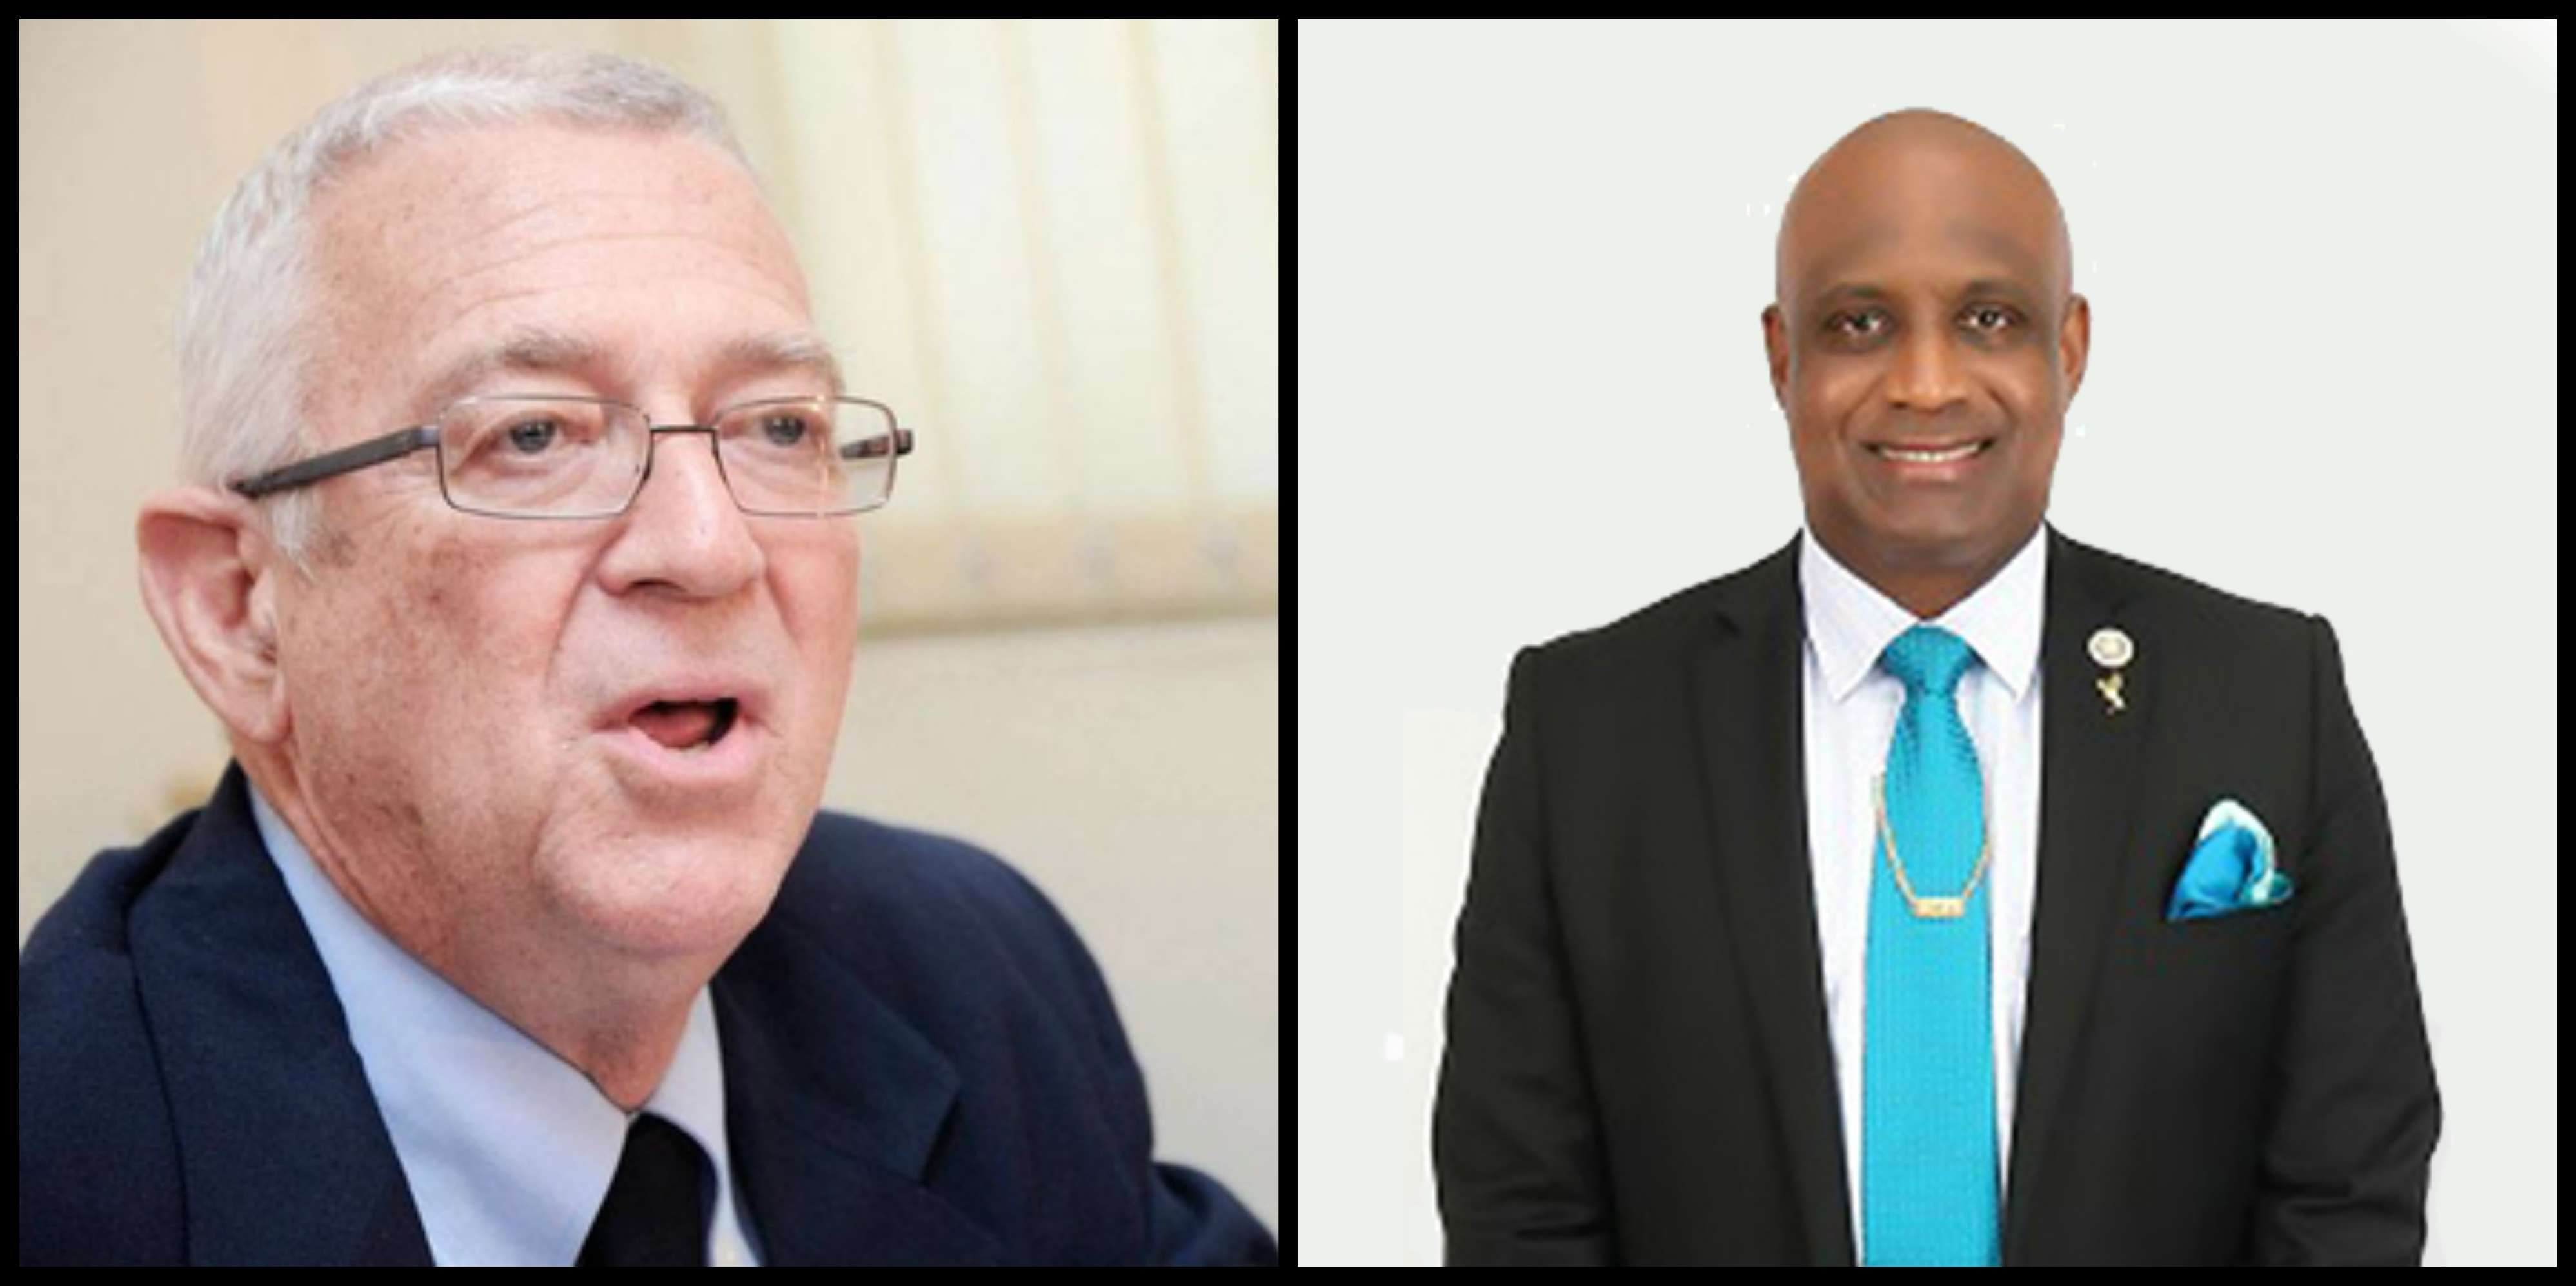 Thwaites Says Pinnock's Tenure At CMU Is Untenable, Calls On PM To Take Immediate Action